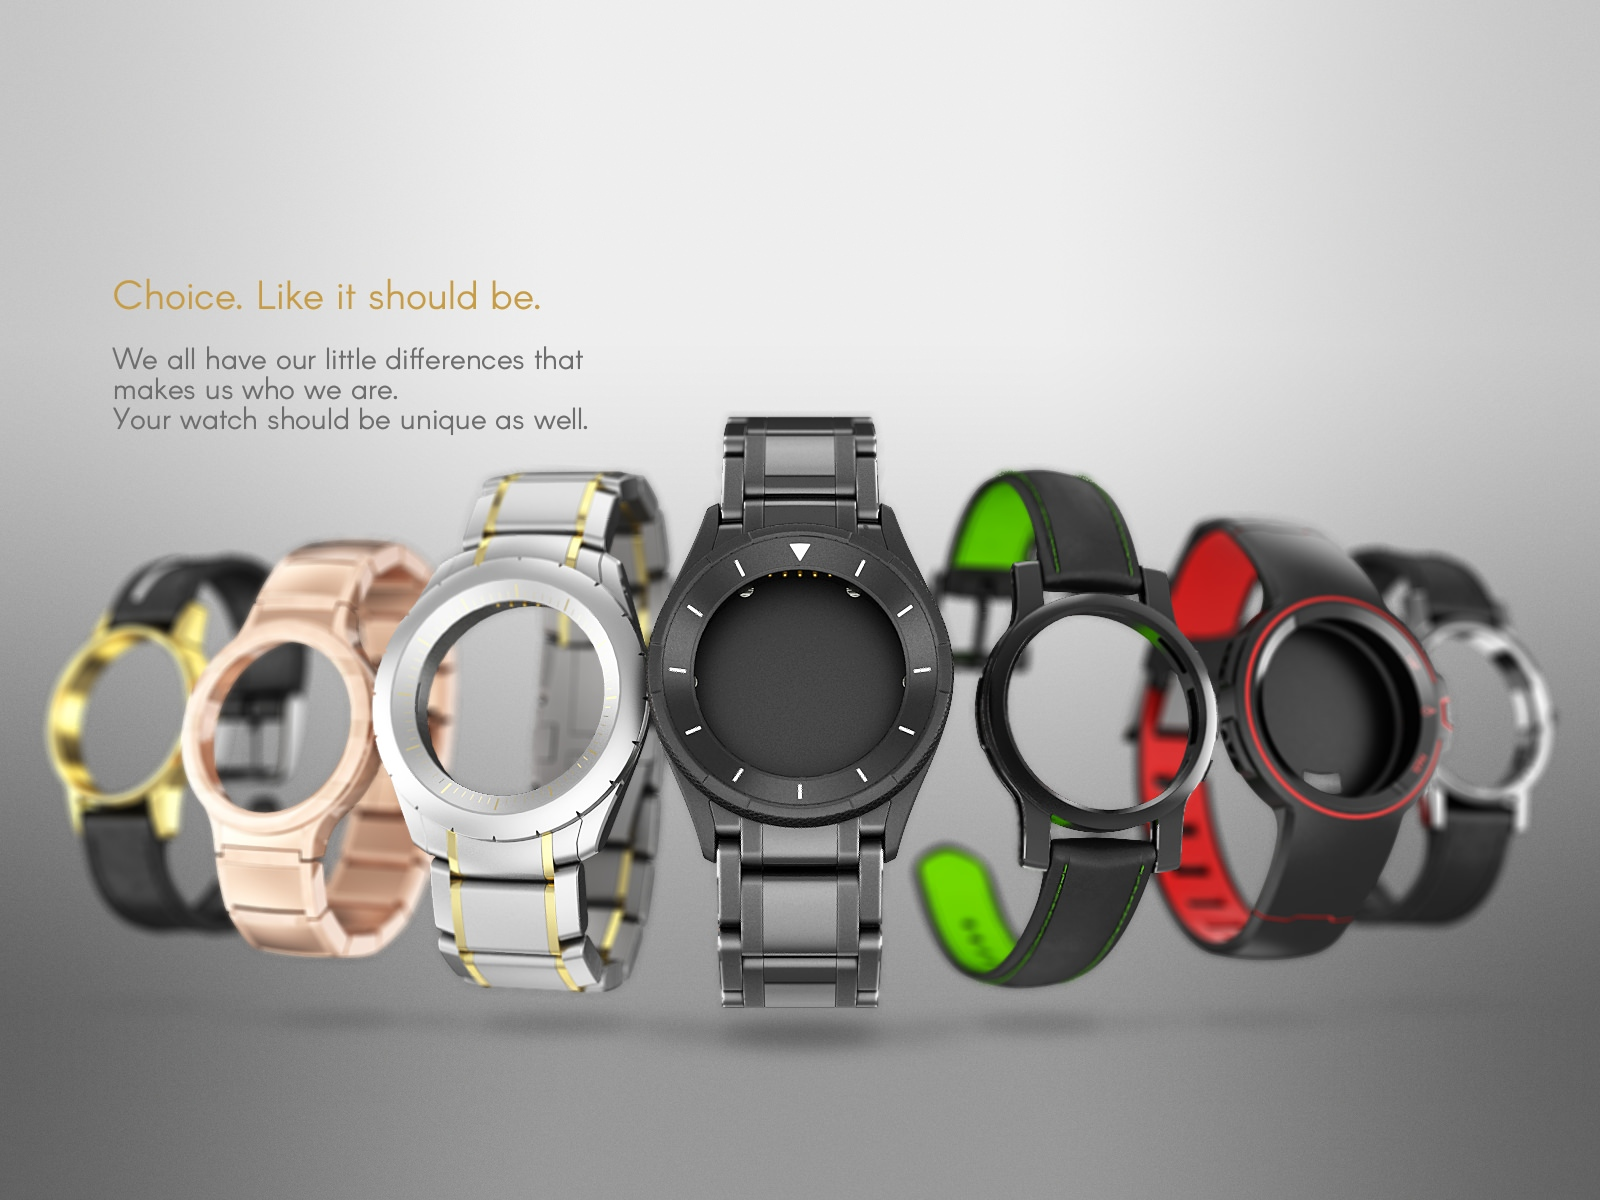 A staggered array of watch cases of various styles and colours